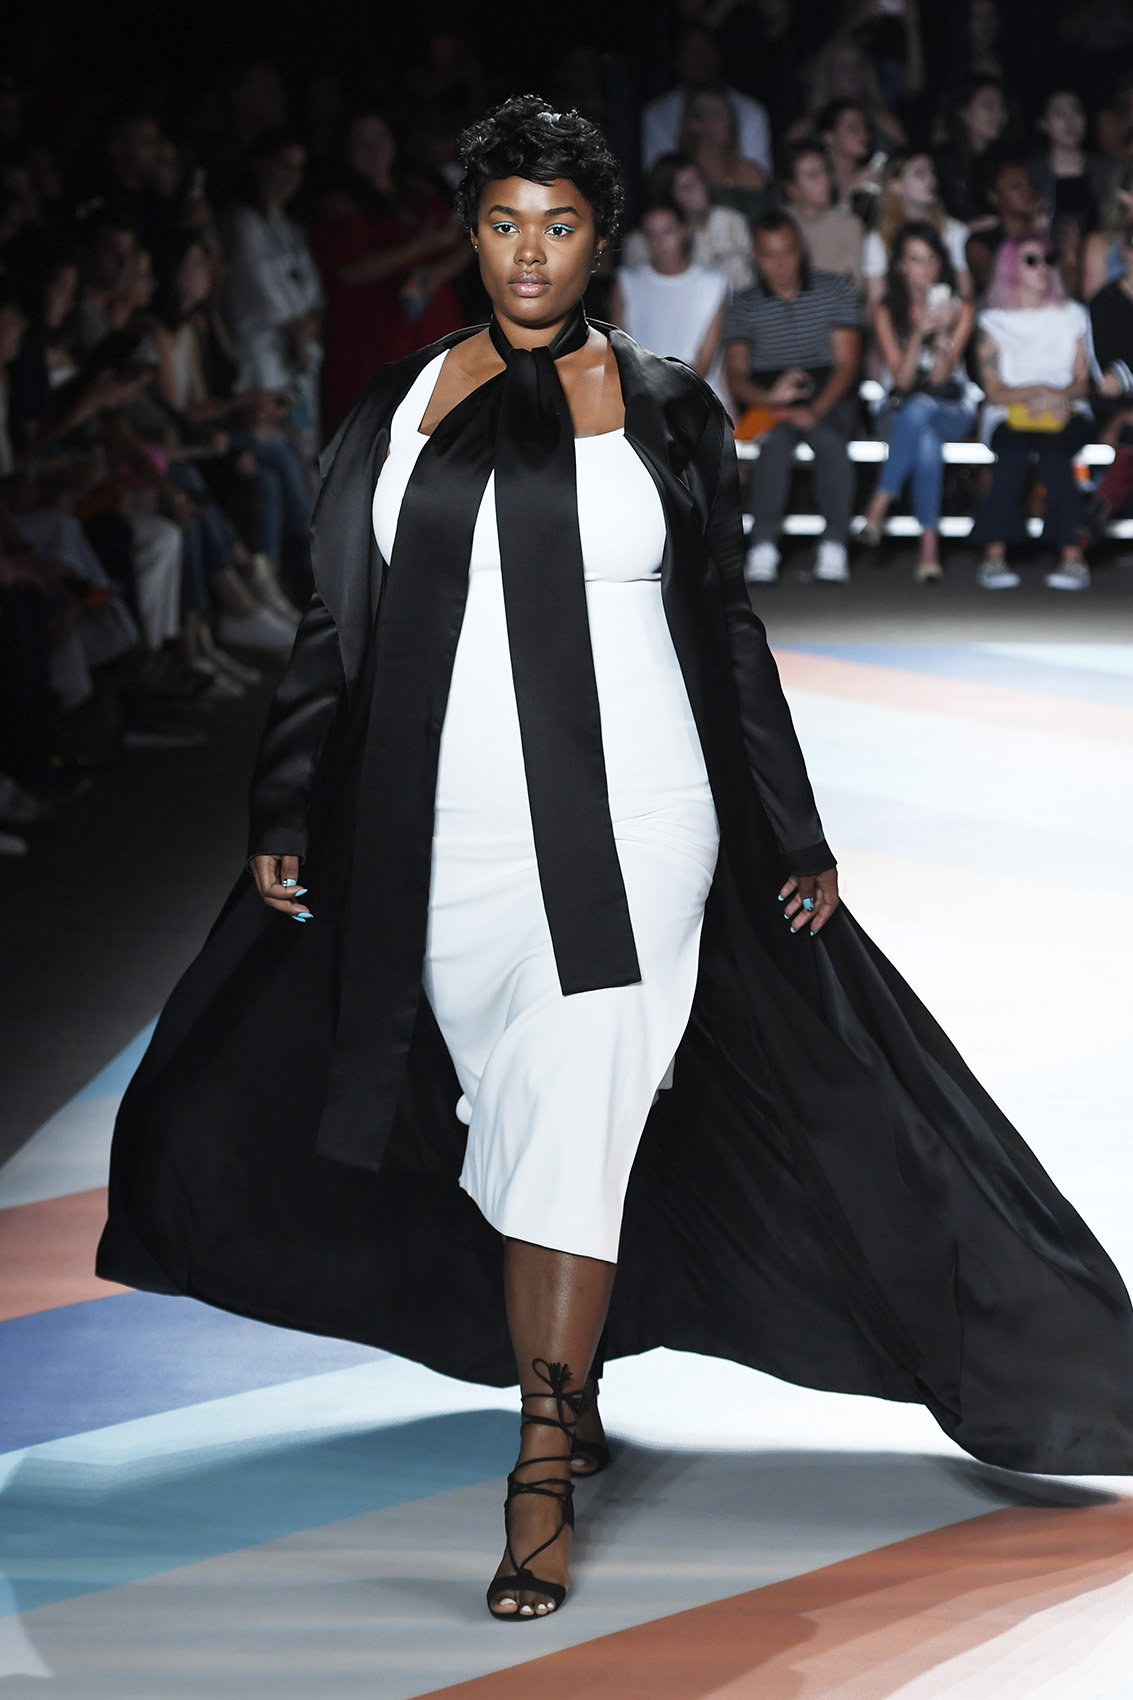 Christian Siriano Runway Model during New York Fashion Week